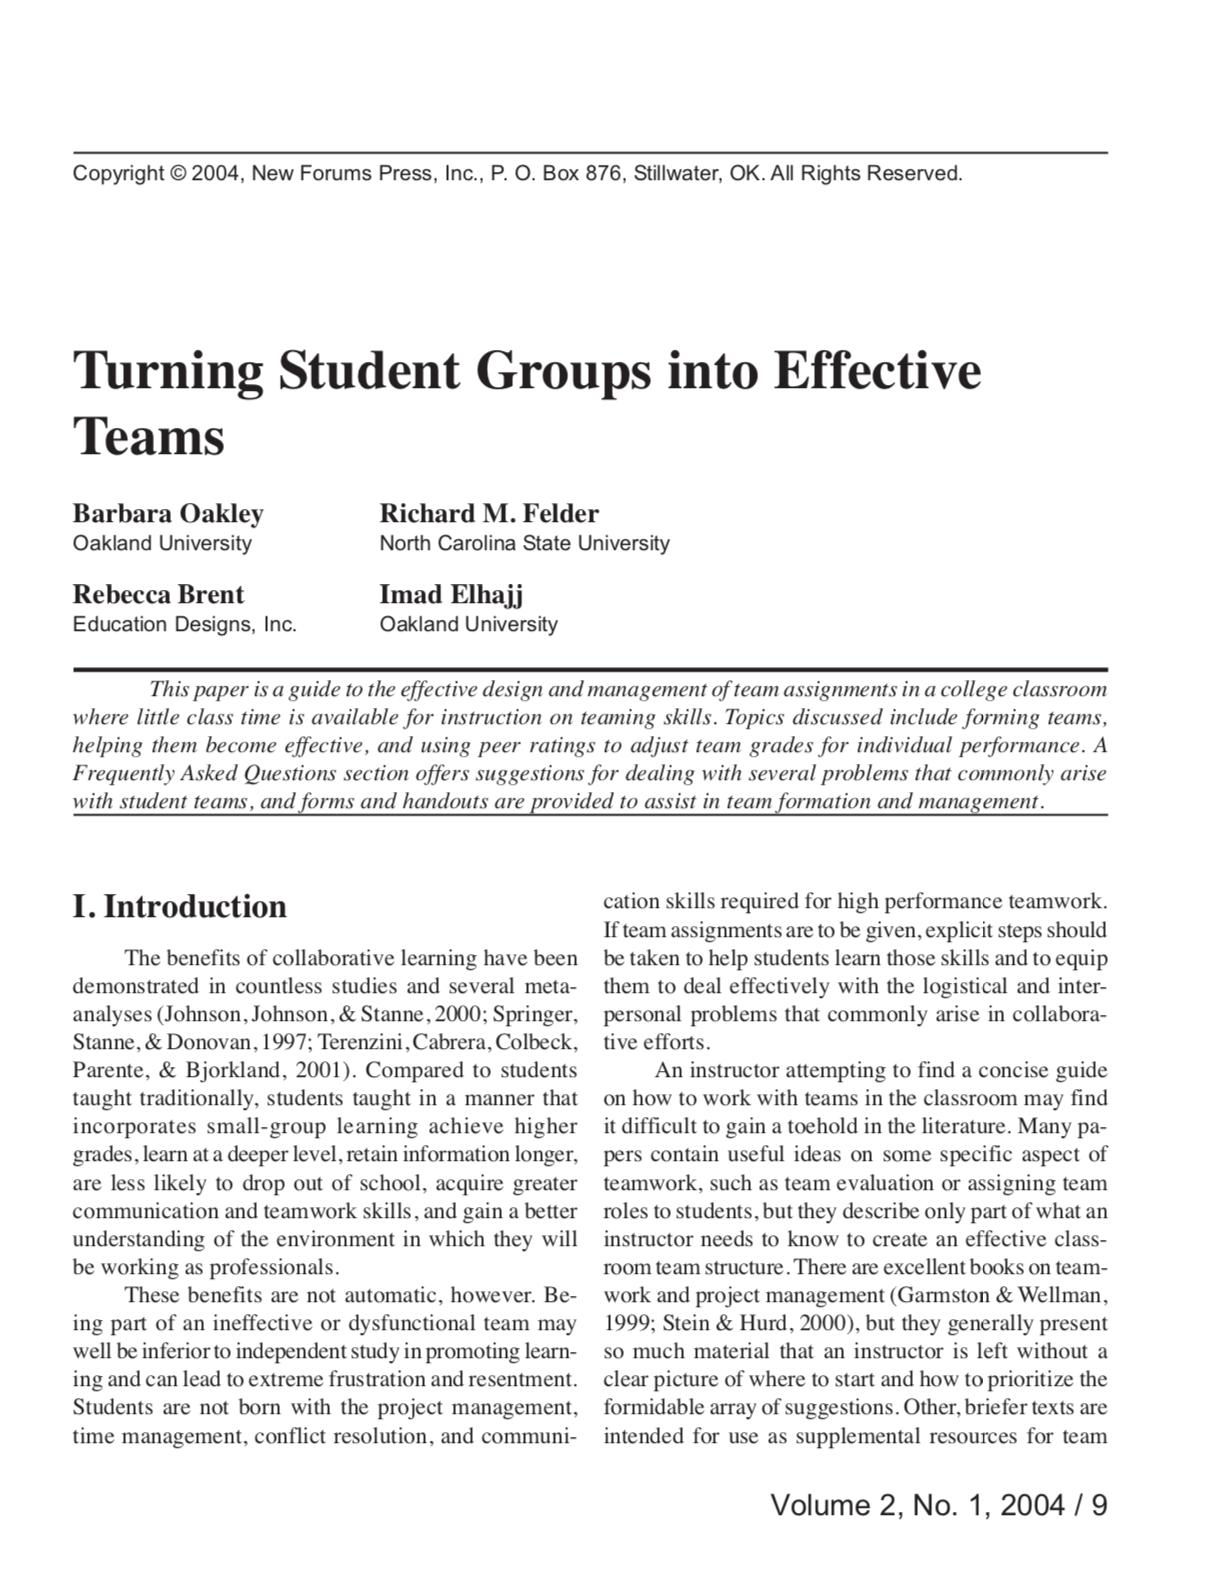 Turning Student Groups into Effective Teams